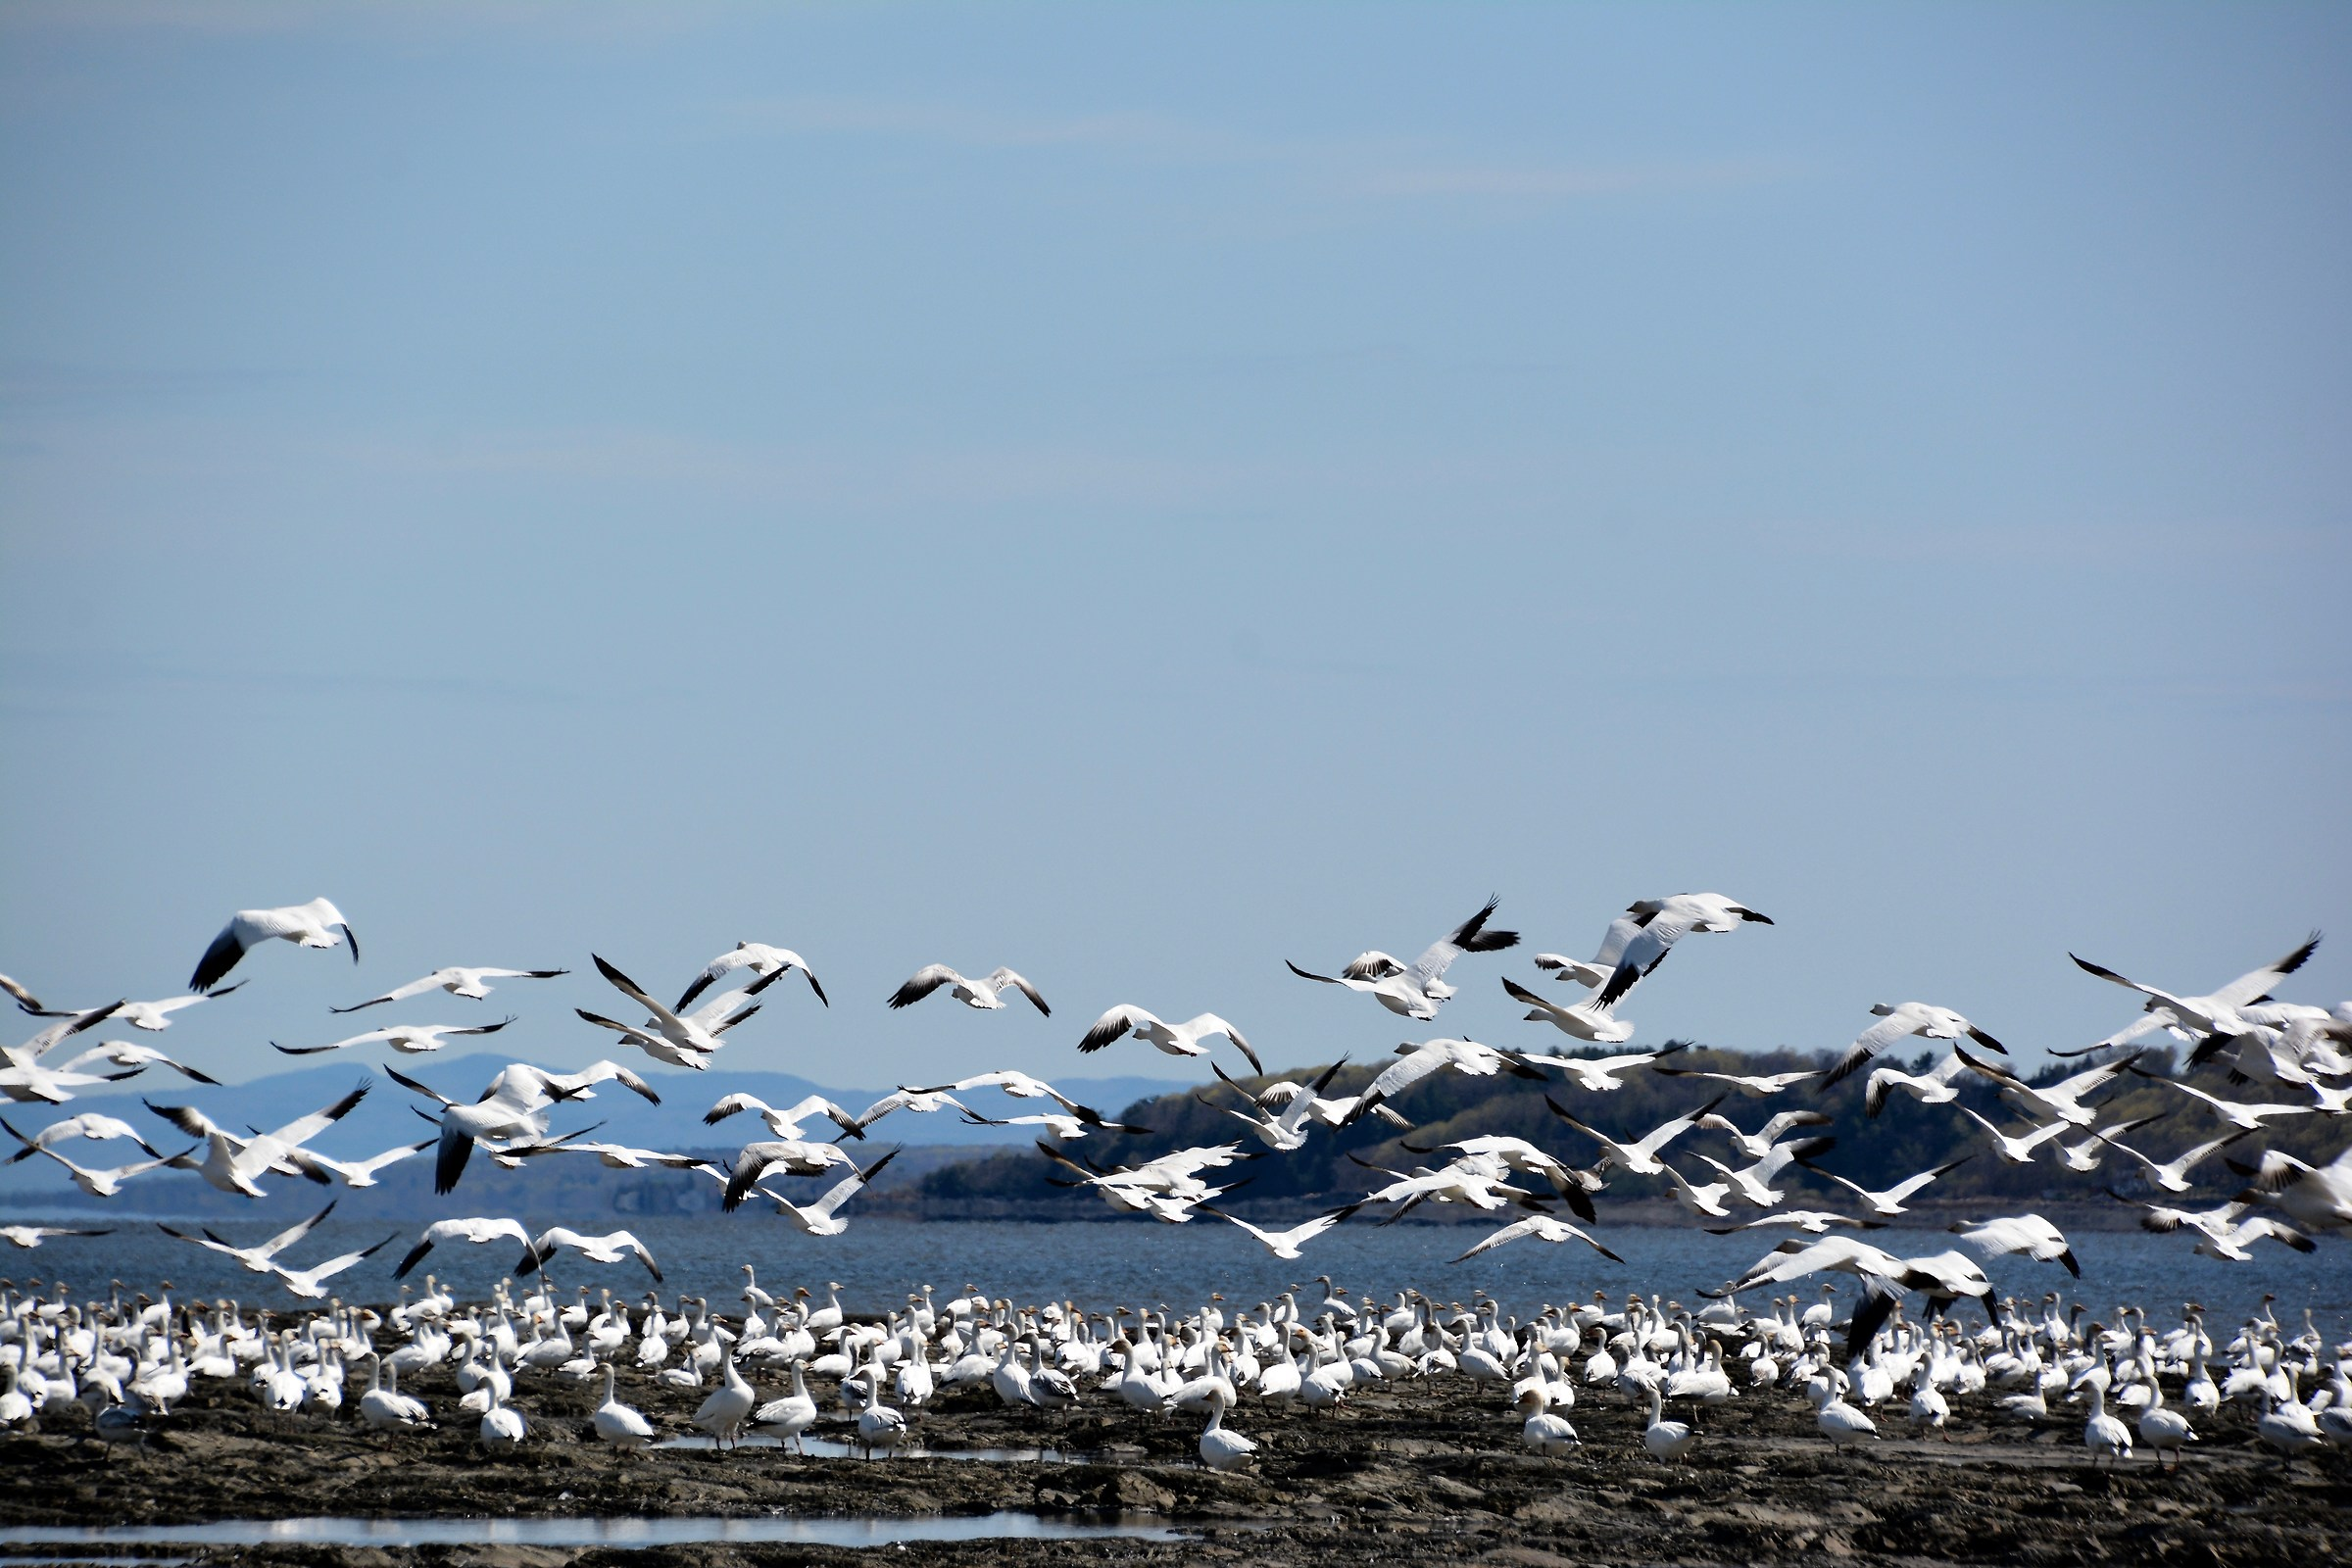 Thousands of geese migrate seasonally, QC, St-Vallier...